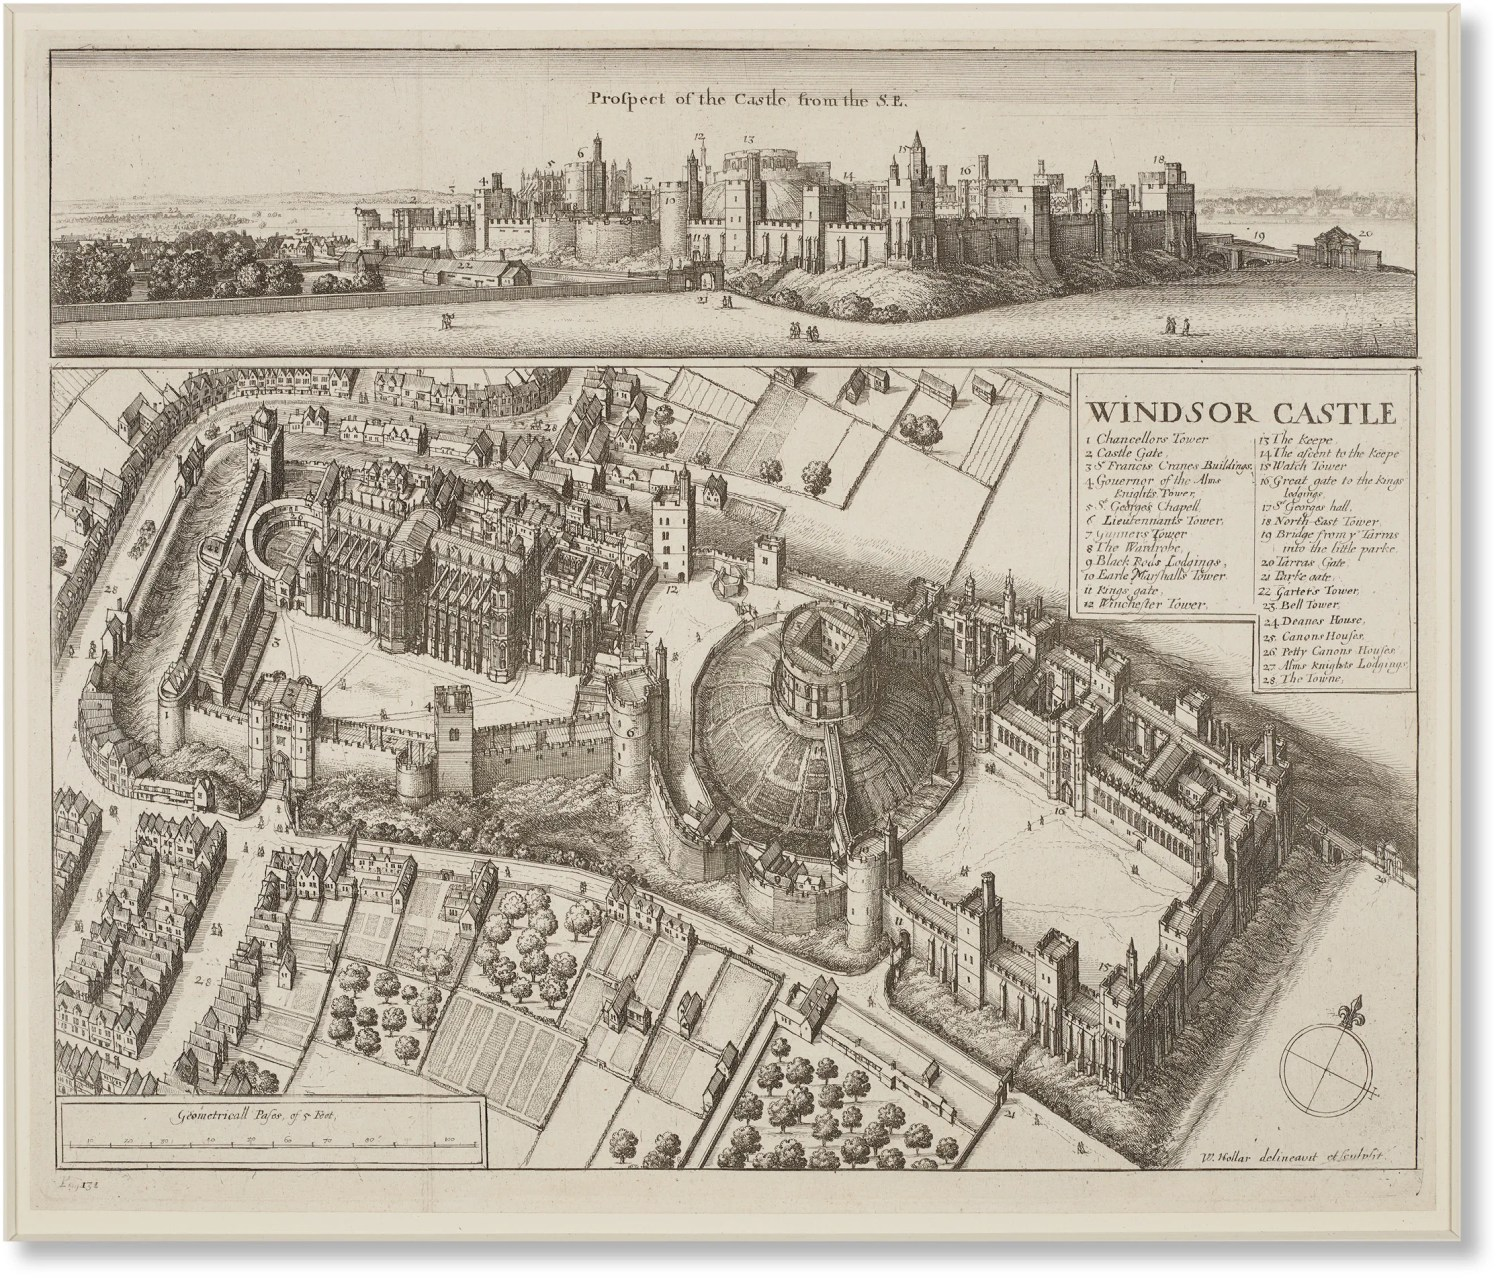 above Wenceslaus Hollar's view of Windsor Castle in 1672. John Evelyn, visiting on 8 June 1654, found the castle to be: 'large in circumference; but the rooms melancholy, and of ancient magnificence'. Samuel Pepys, visiting on 26 February 1666, was more alive to the appeal of the past and the spirit of the place: he called it 'the most Romantique castle that is in the world'.